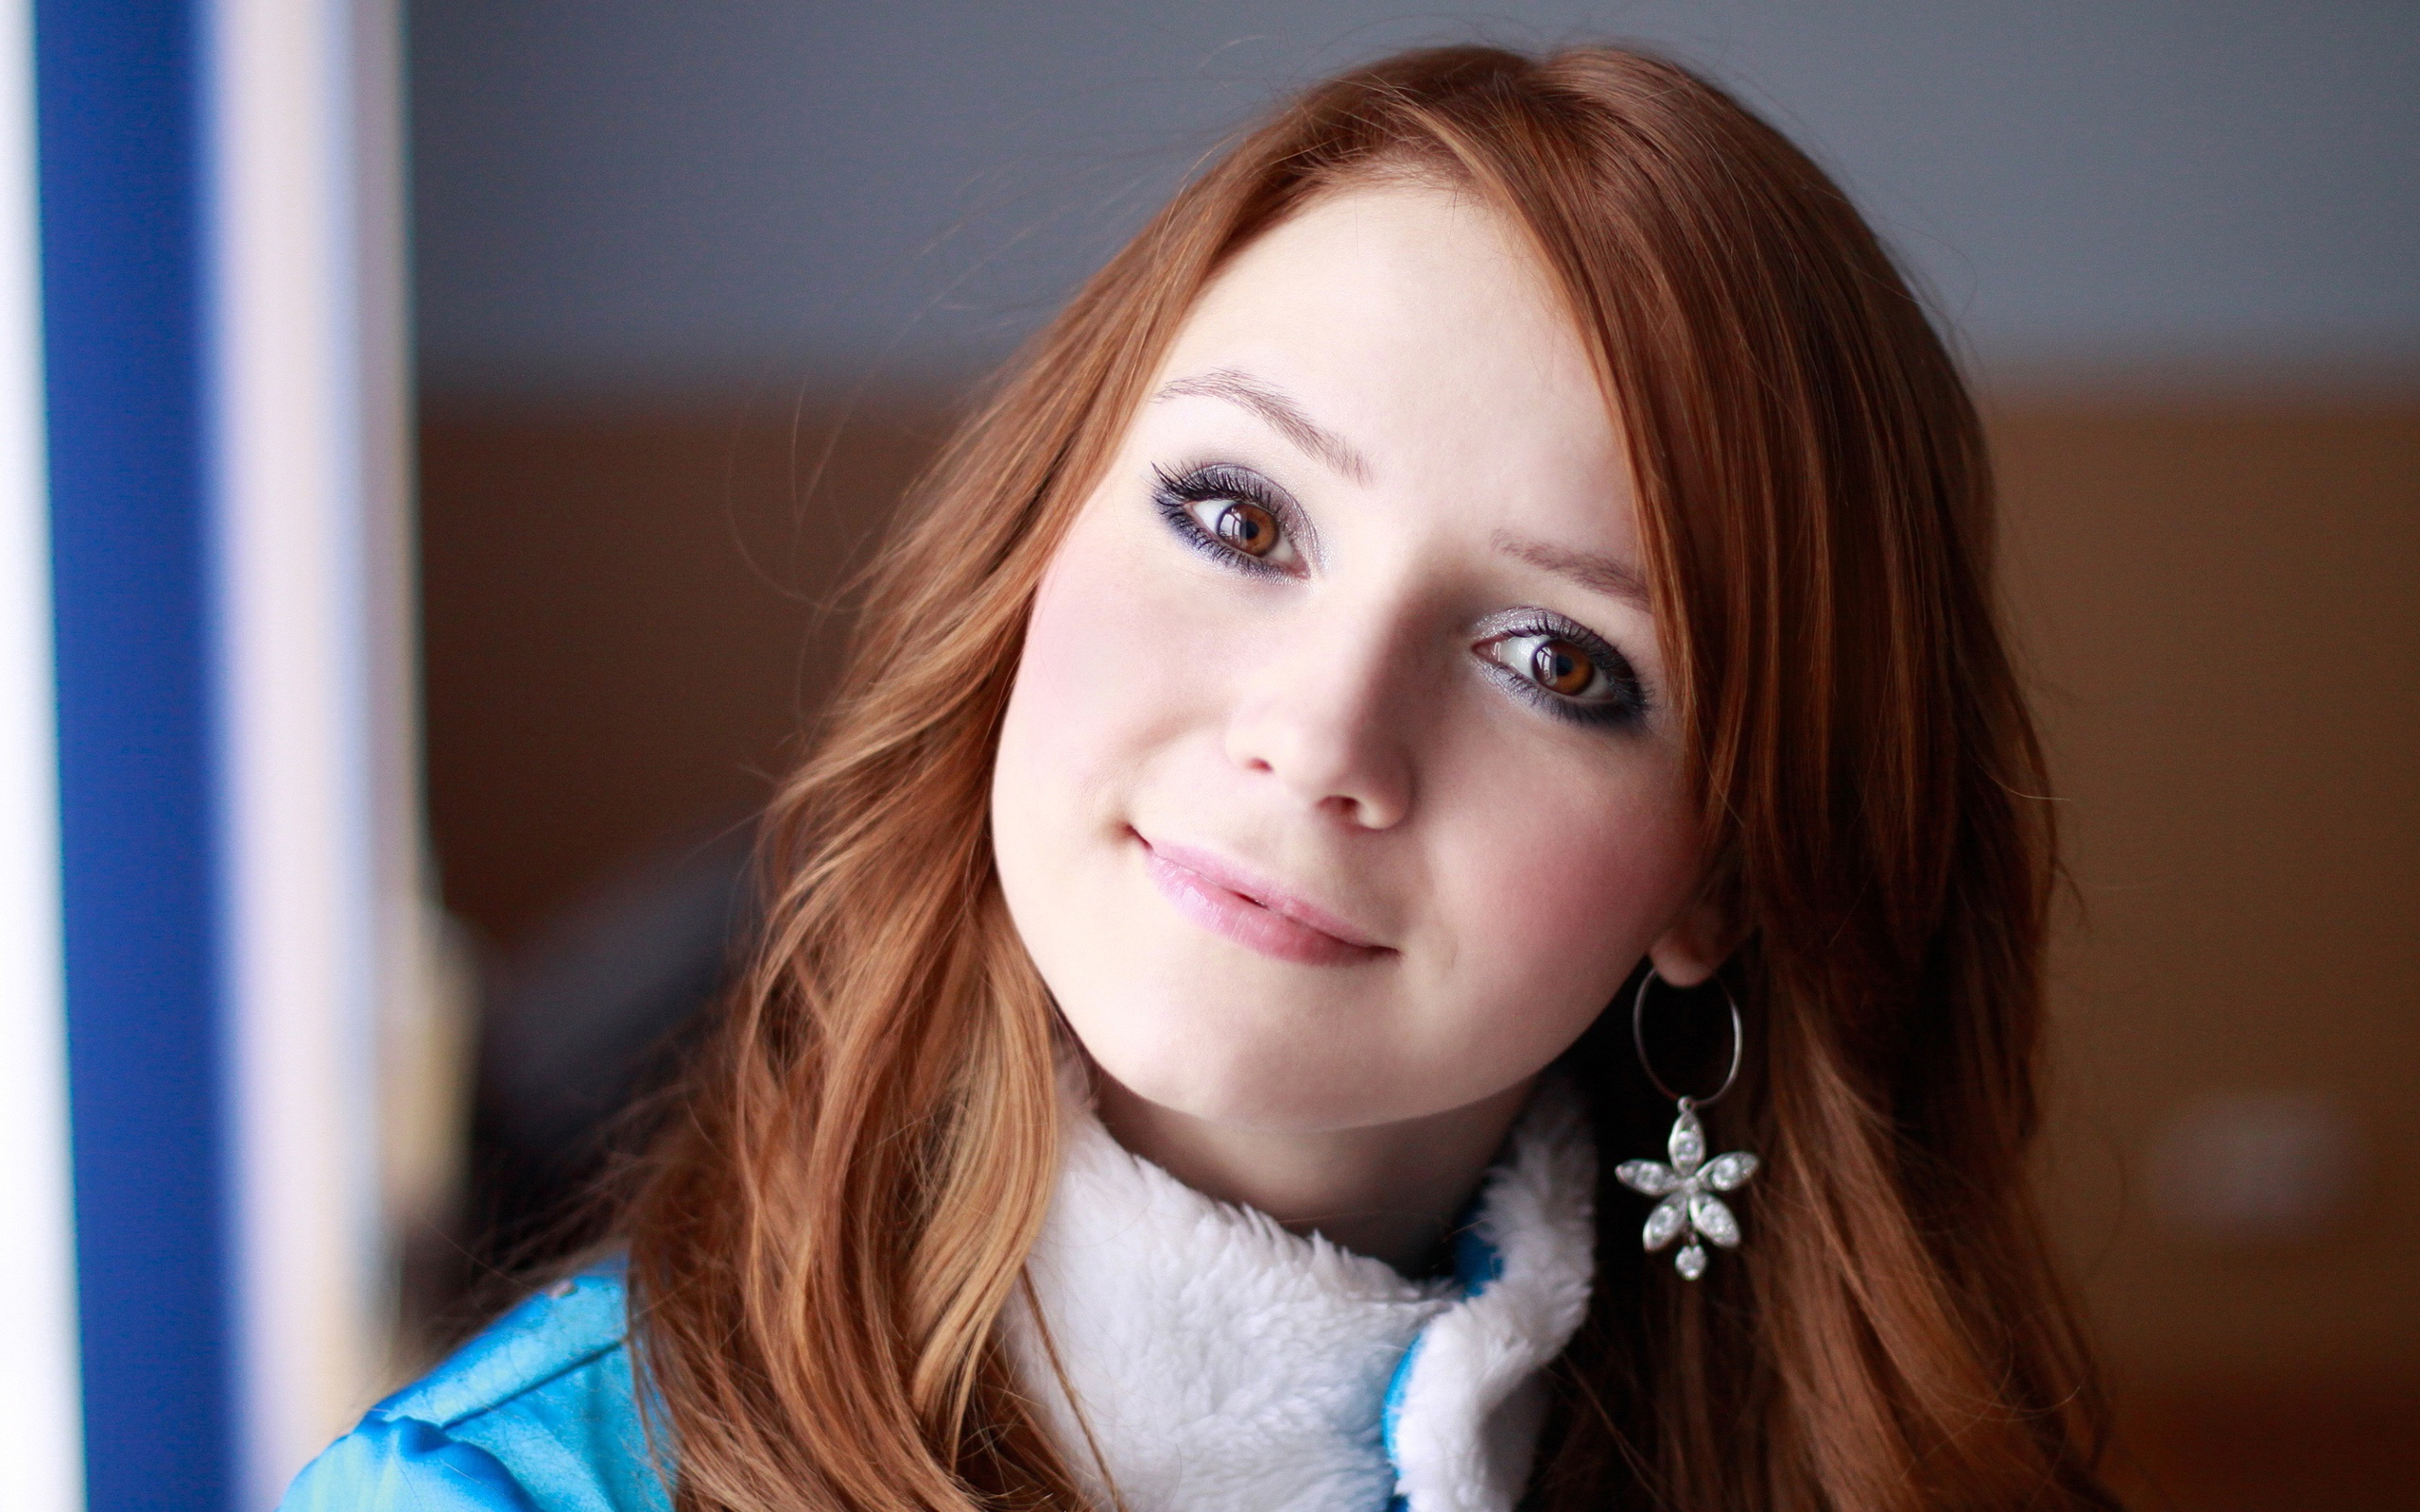 Wallpaper Beautiful Red Hair Girl Smile 2560x1600 Hd Picture